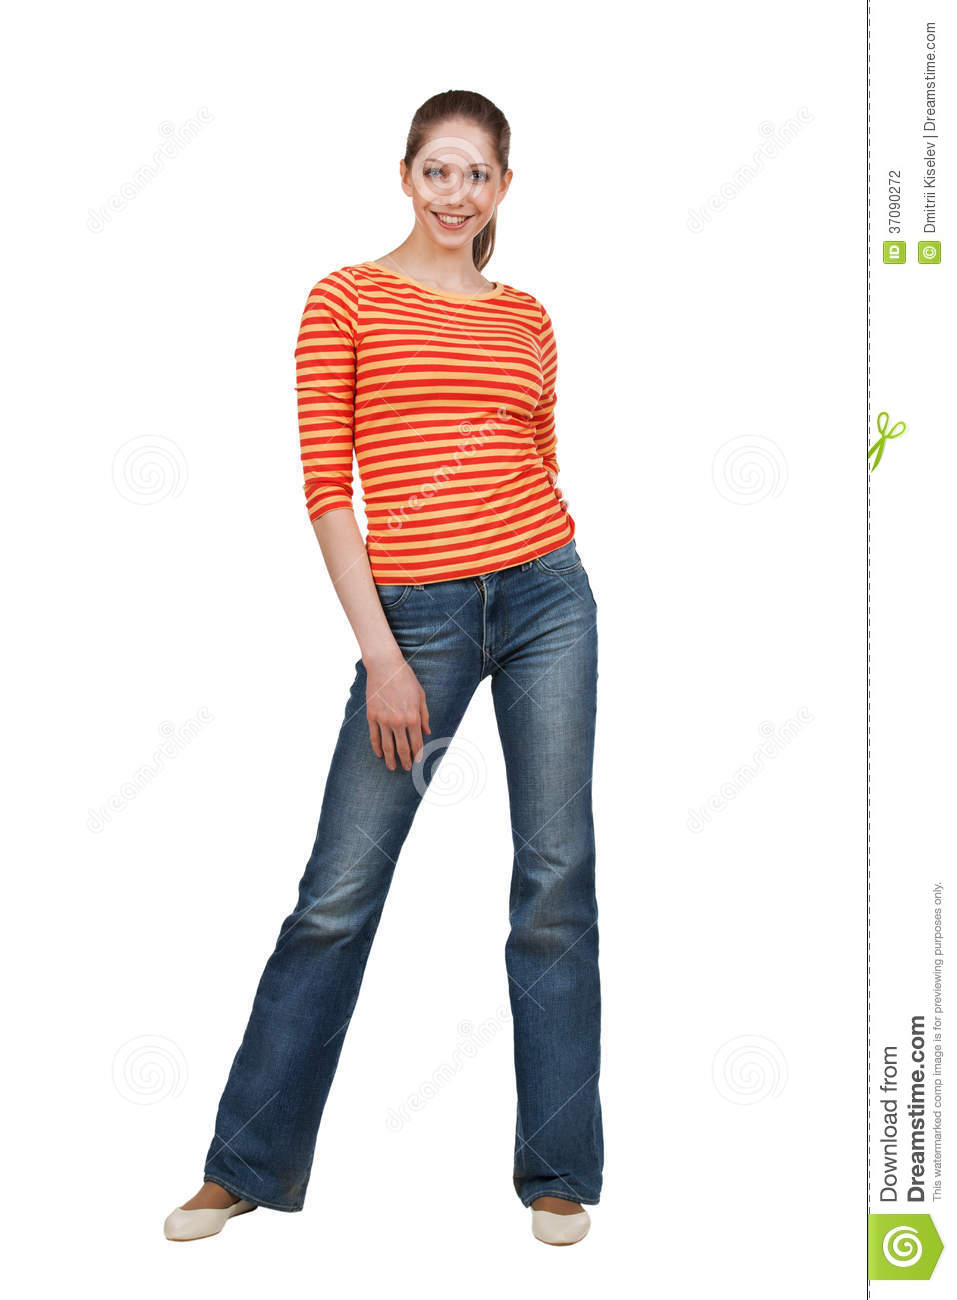 Happy Woman In T-shirt And Blue Jeans Stock Photography - Image 37090272